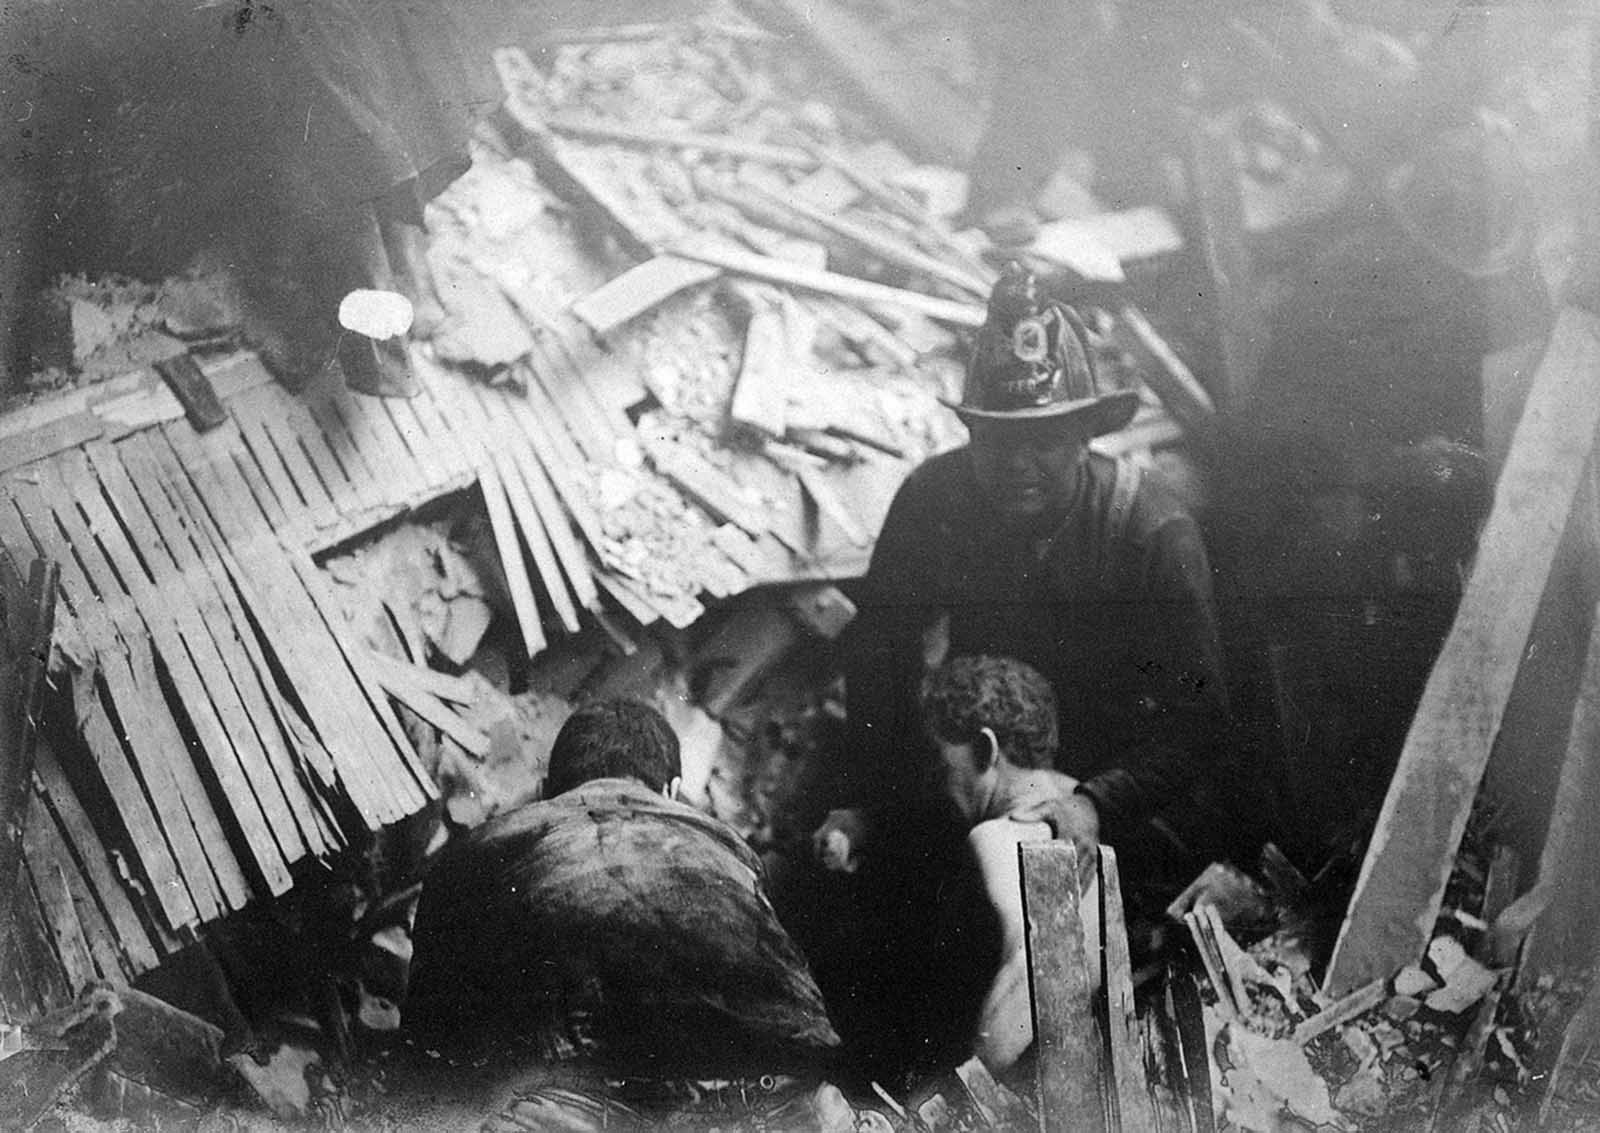 Rescue workers helping survivors in the wreckage.